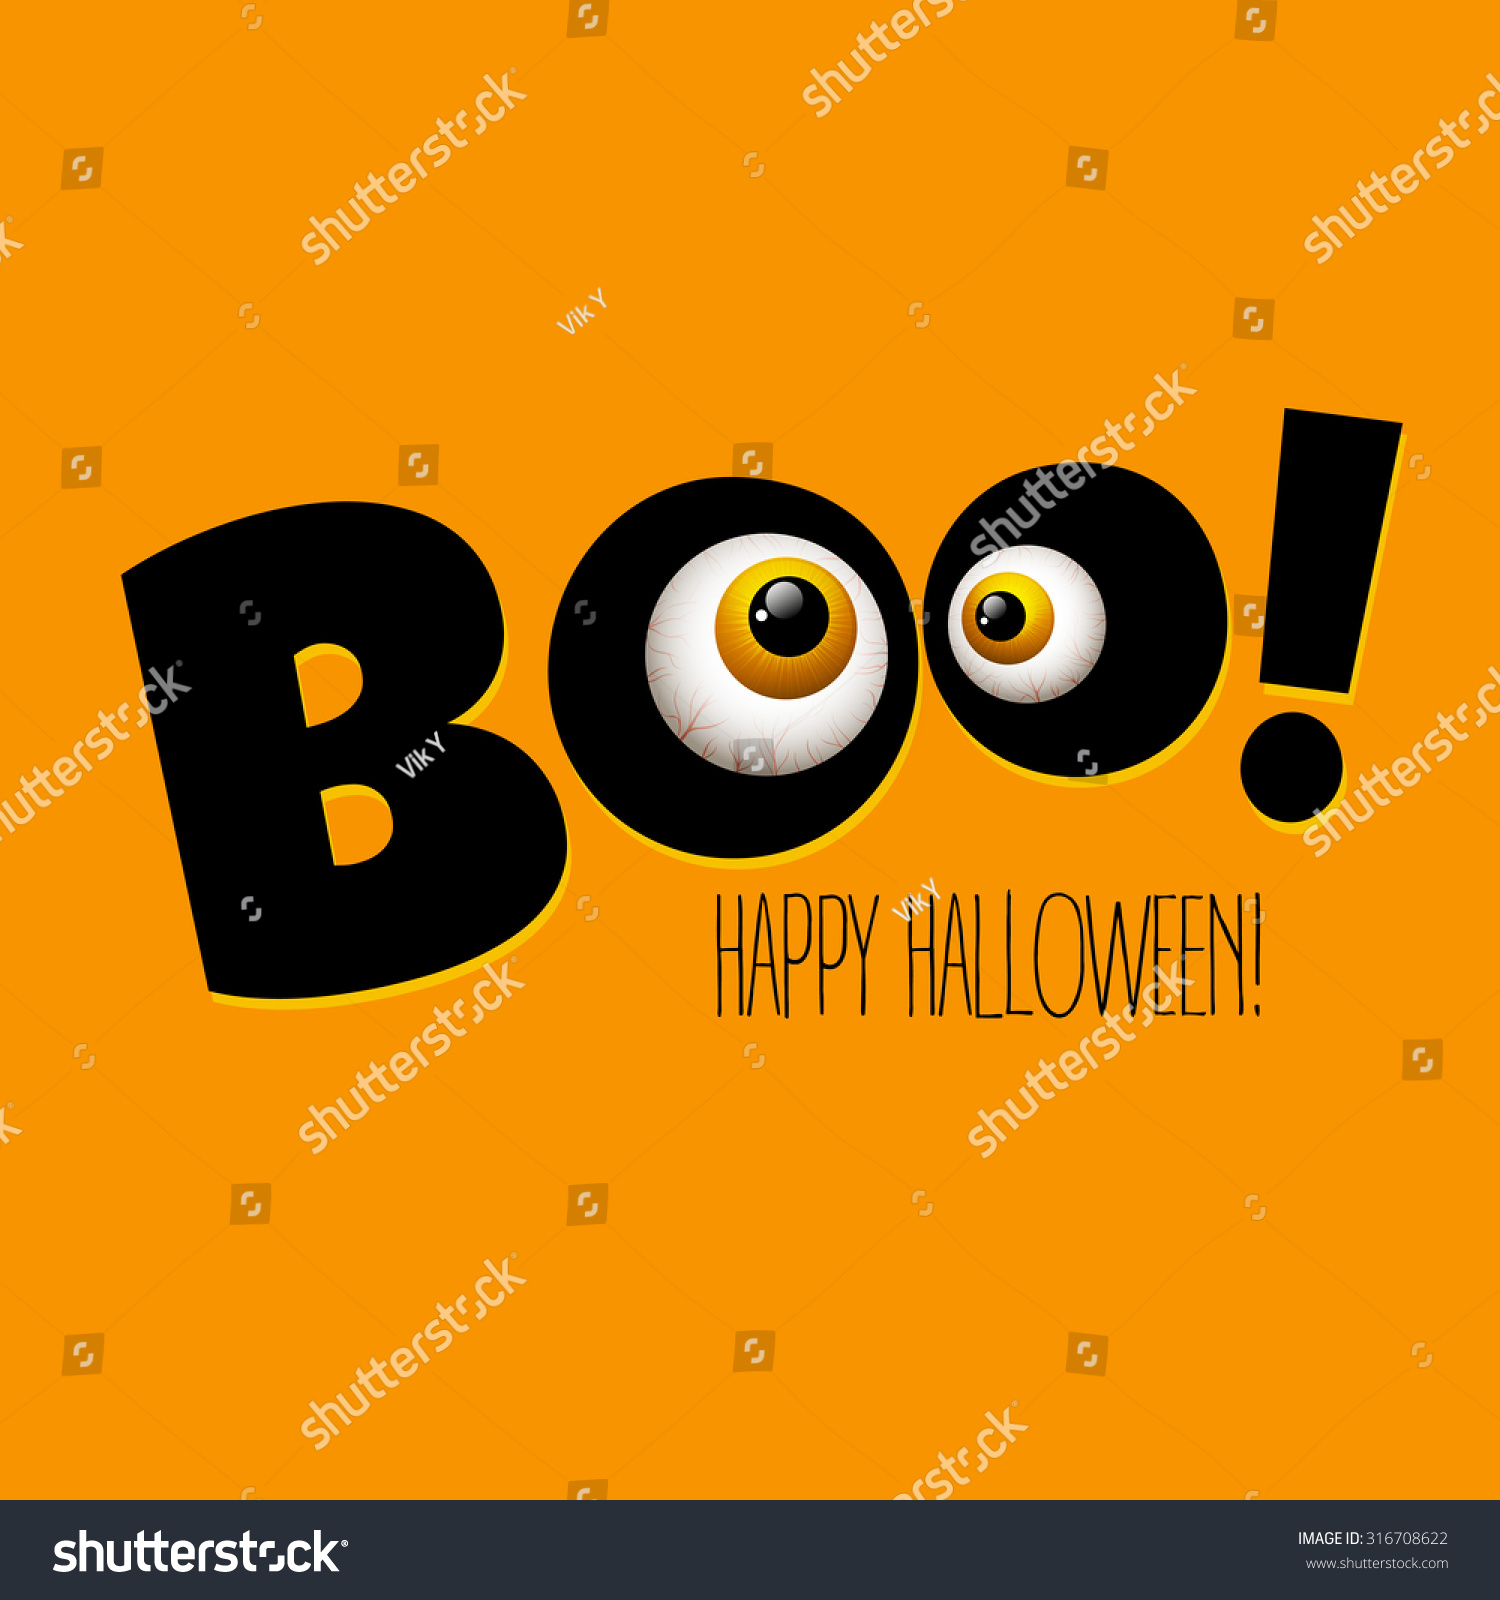 Halloween Birthday Cards Image collections Free Birthday Cards